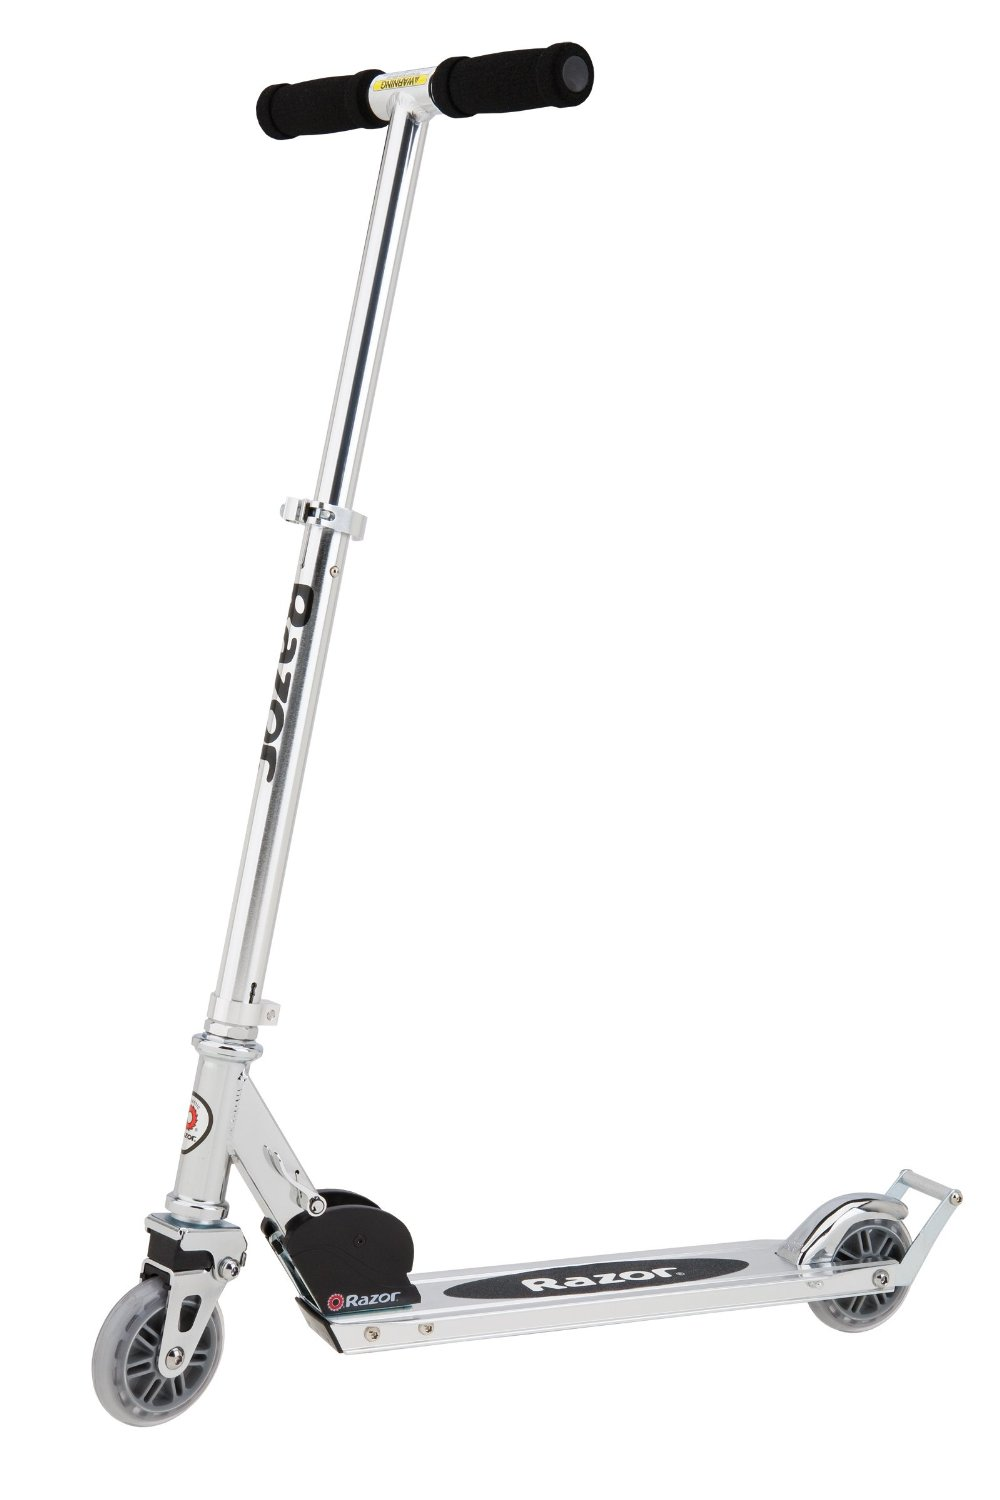 Top 5 Razor Scooter